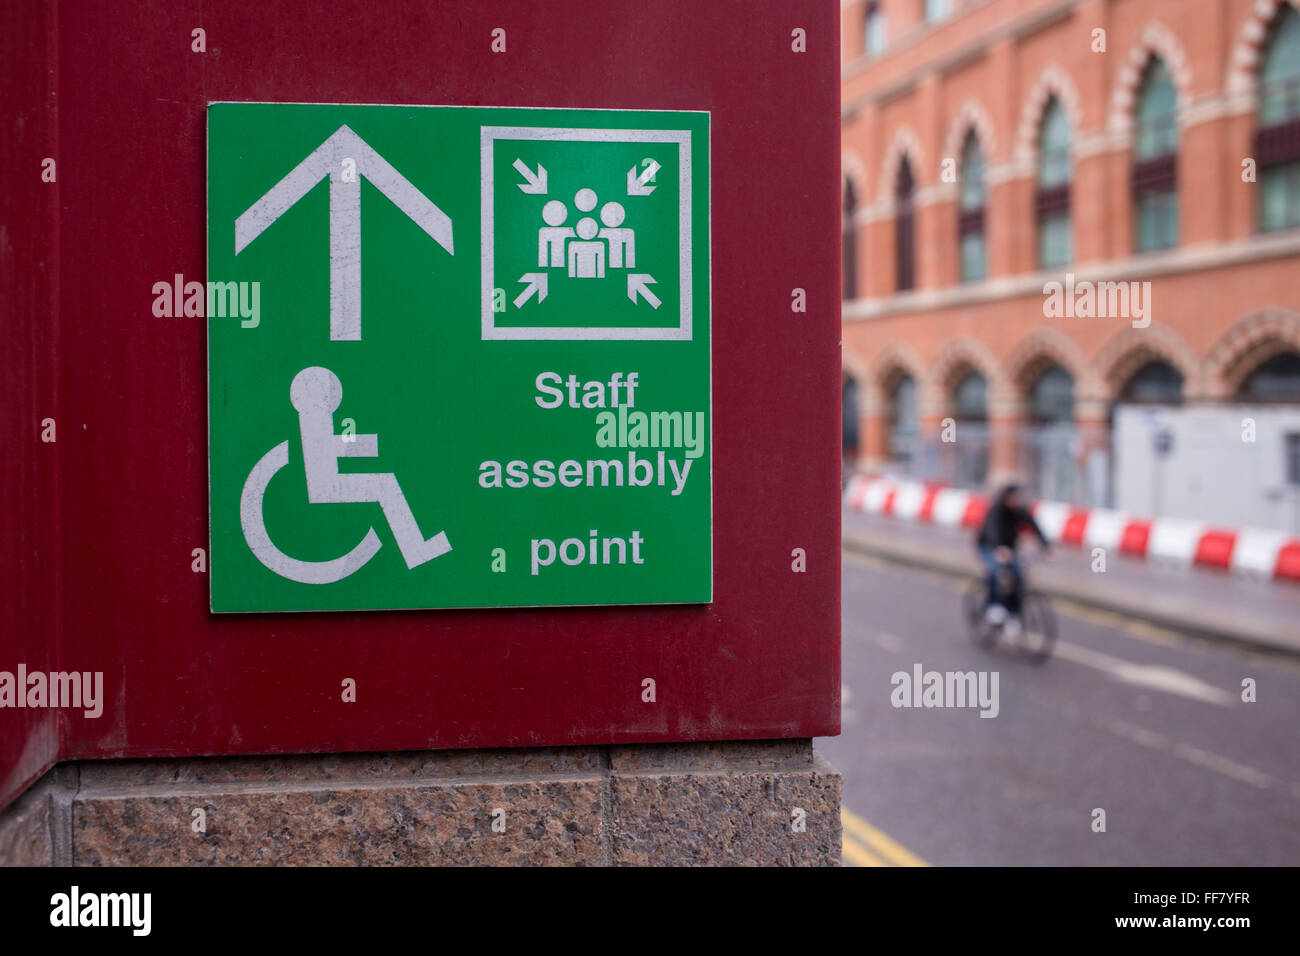 A green emergency evacuation assembly meeting point for staff the sign also shows the international symbol of access signposting people to the disability meeting biocorpaavc